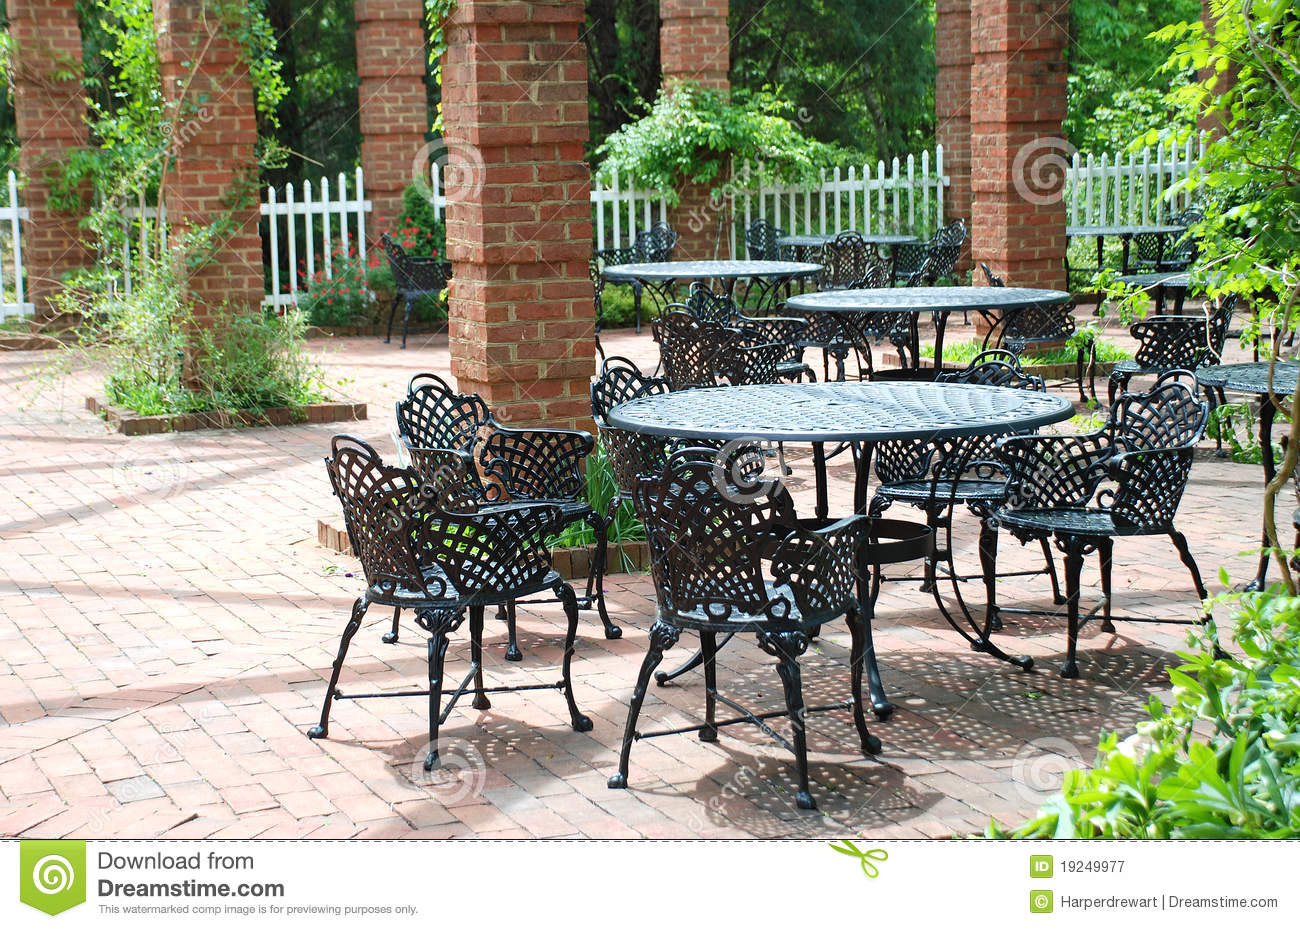 ... Free Stock Photography: Wrought Iron Furniture in Airy Courtyard